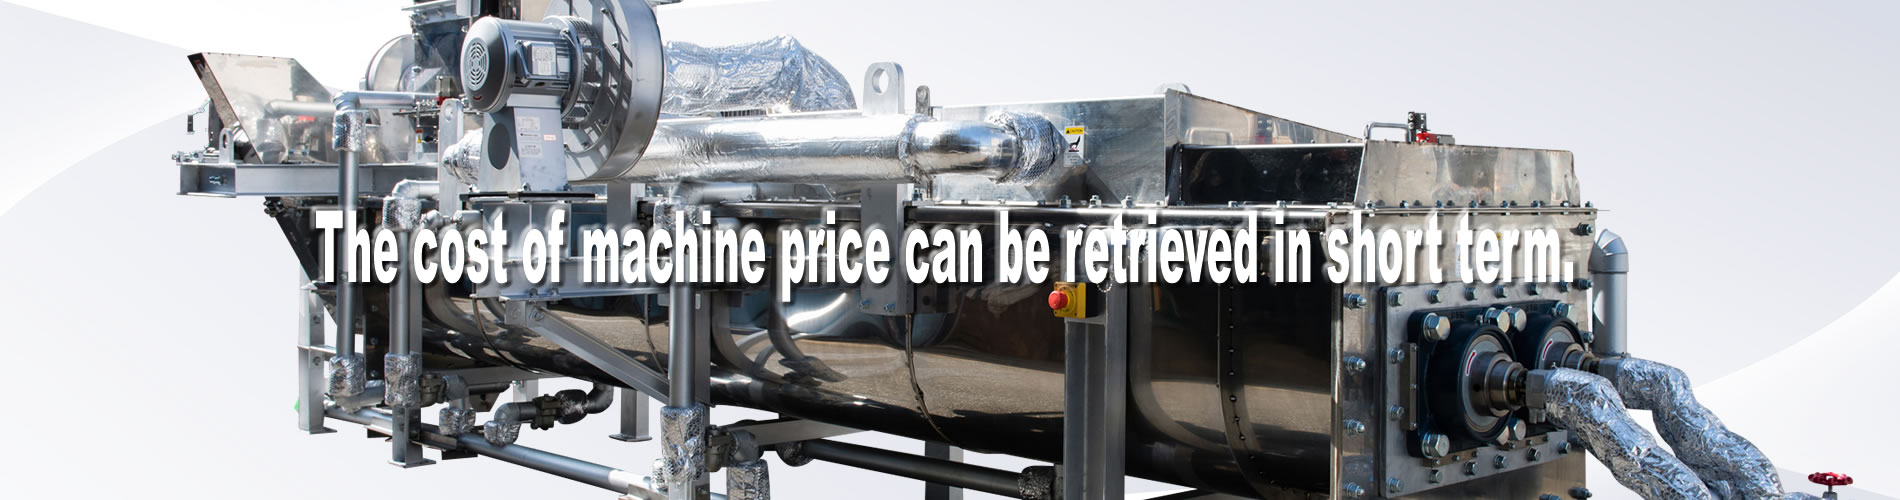 KENKI DRYER sludge dryer The cost of machine can be retrieved in short term.